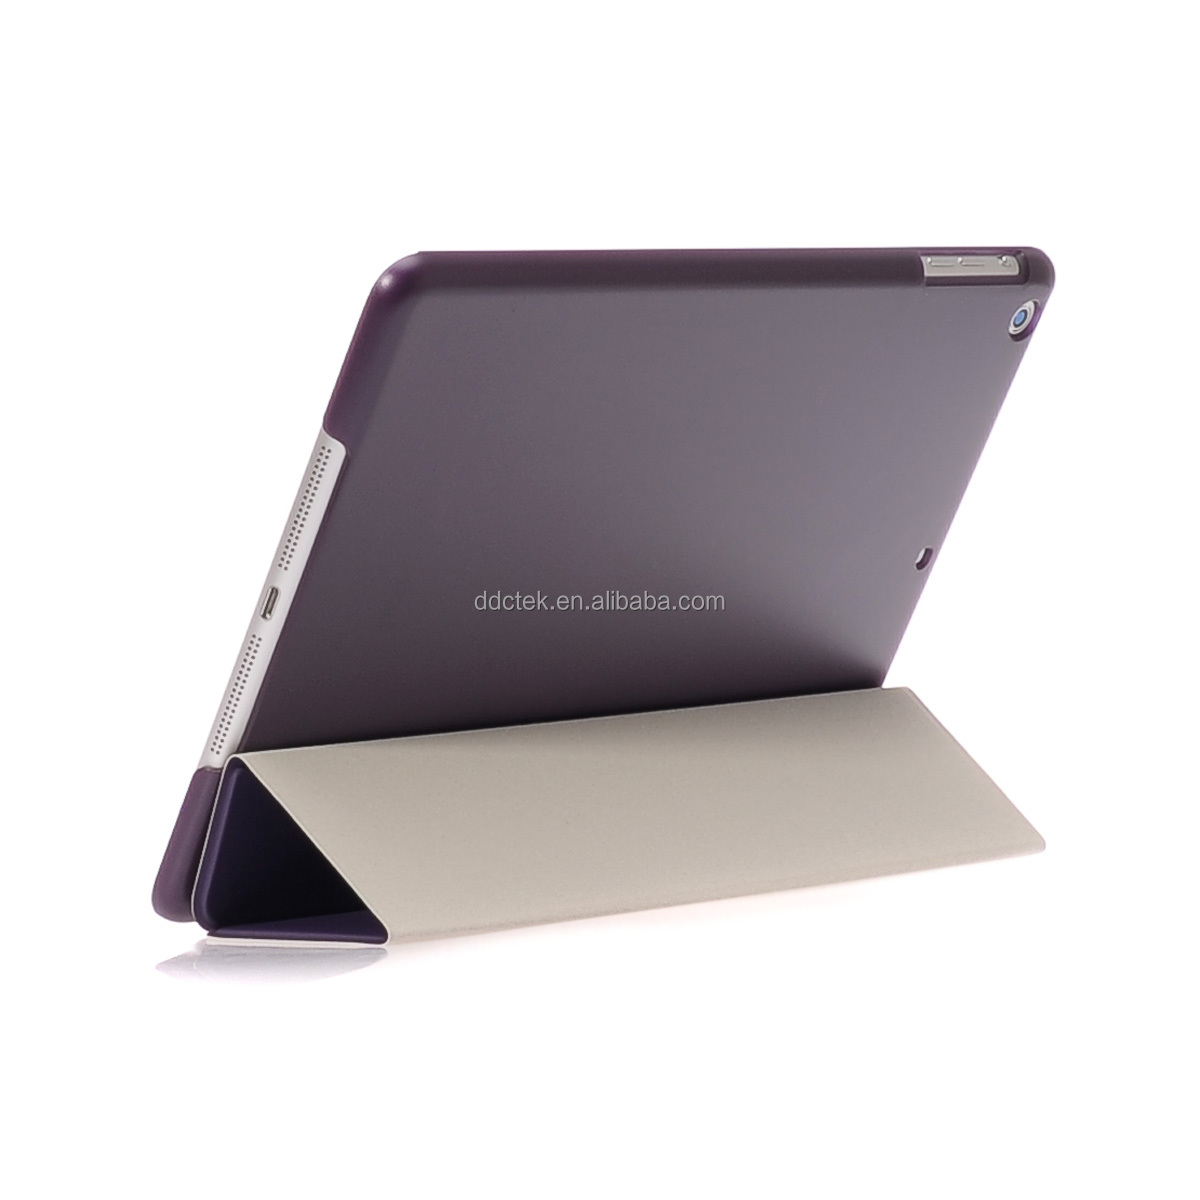 New arrival matte PC base PU leather cover for ipad air 2 case with stand vision Dark purple custom